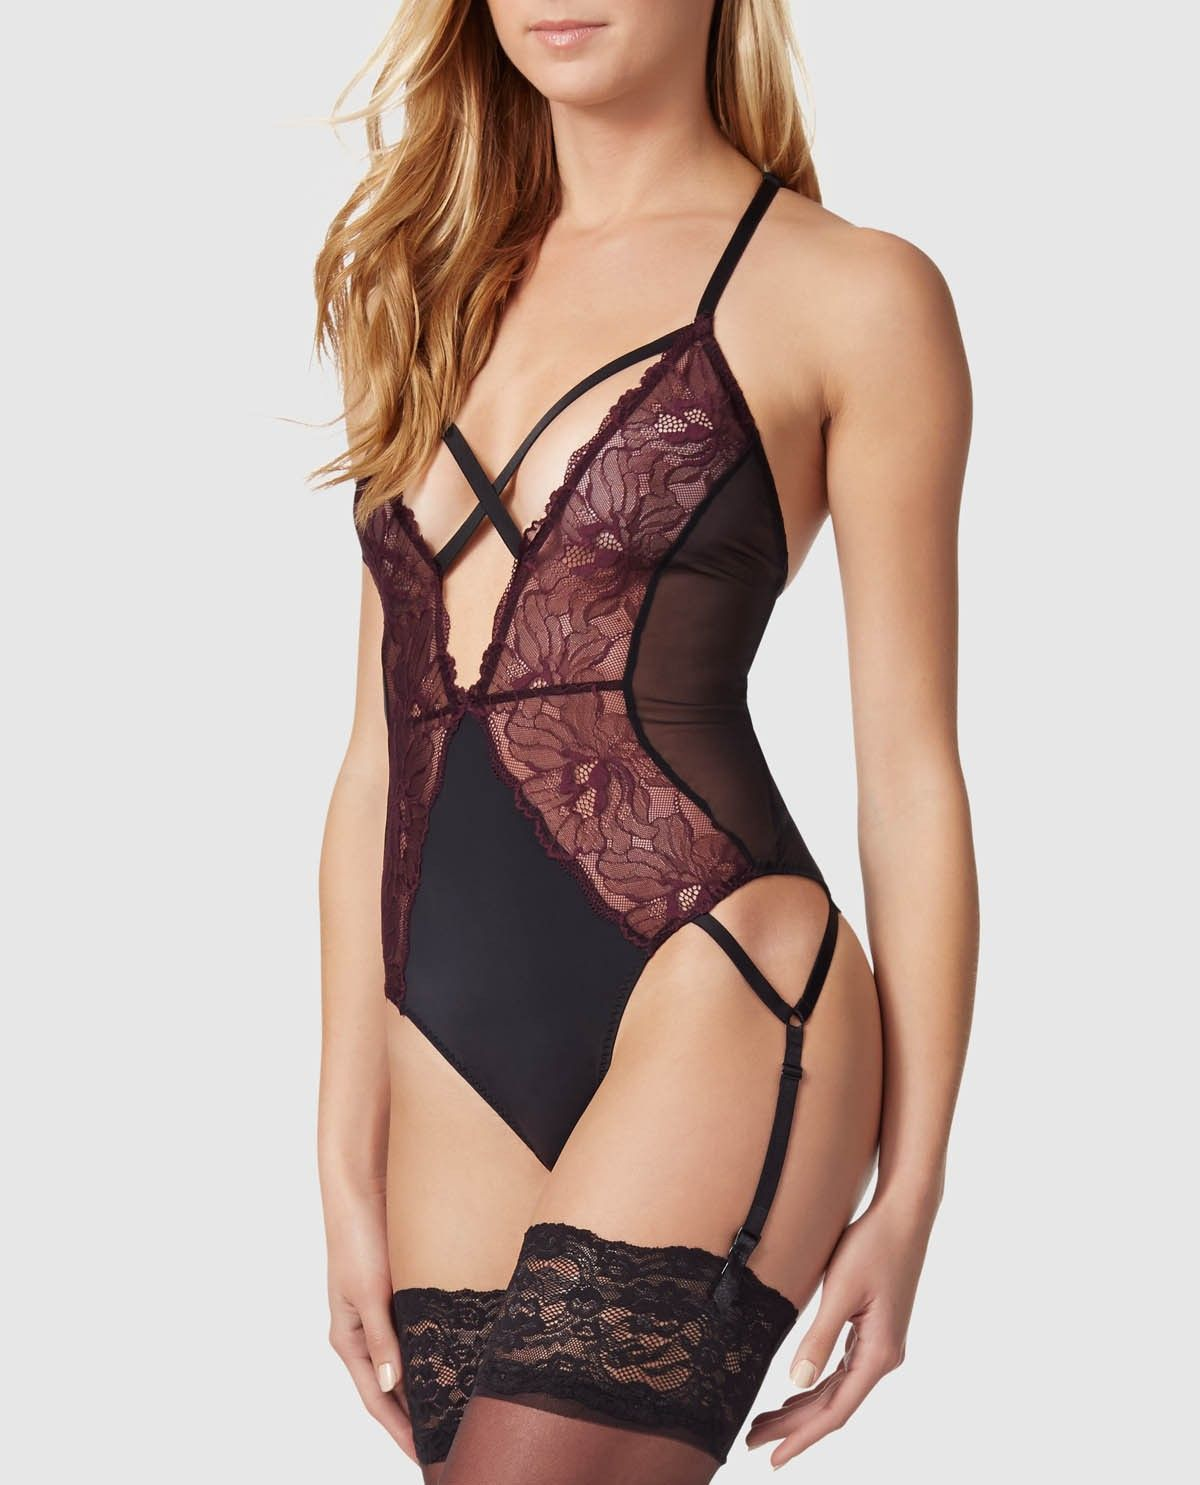 Lace bodysuit i saw it first  Perfectly naughty this bodysuit has an unlined mesh and lace body